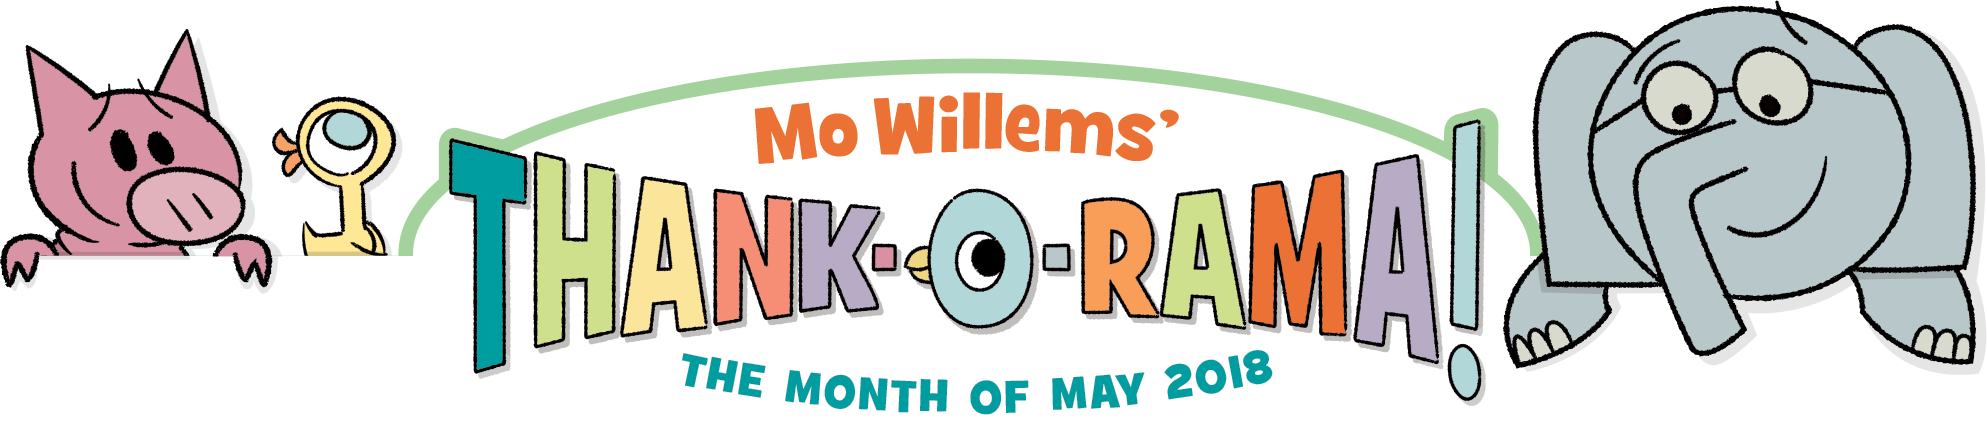 Mo Willems Thankorama